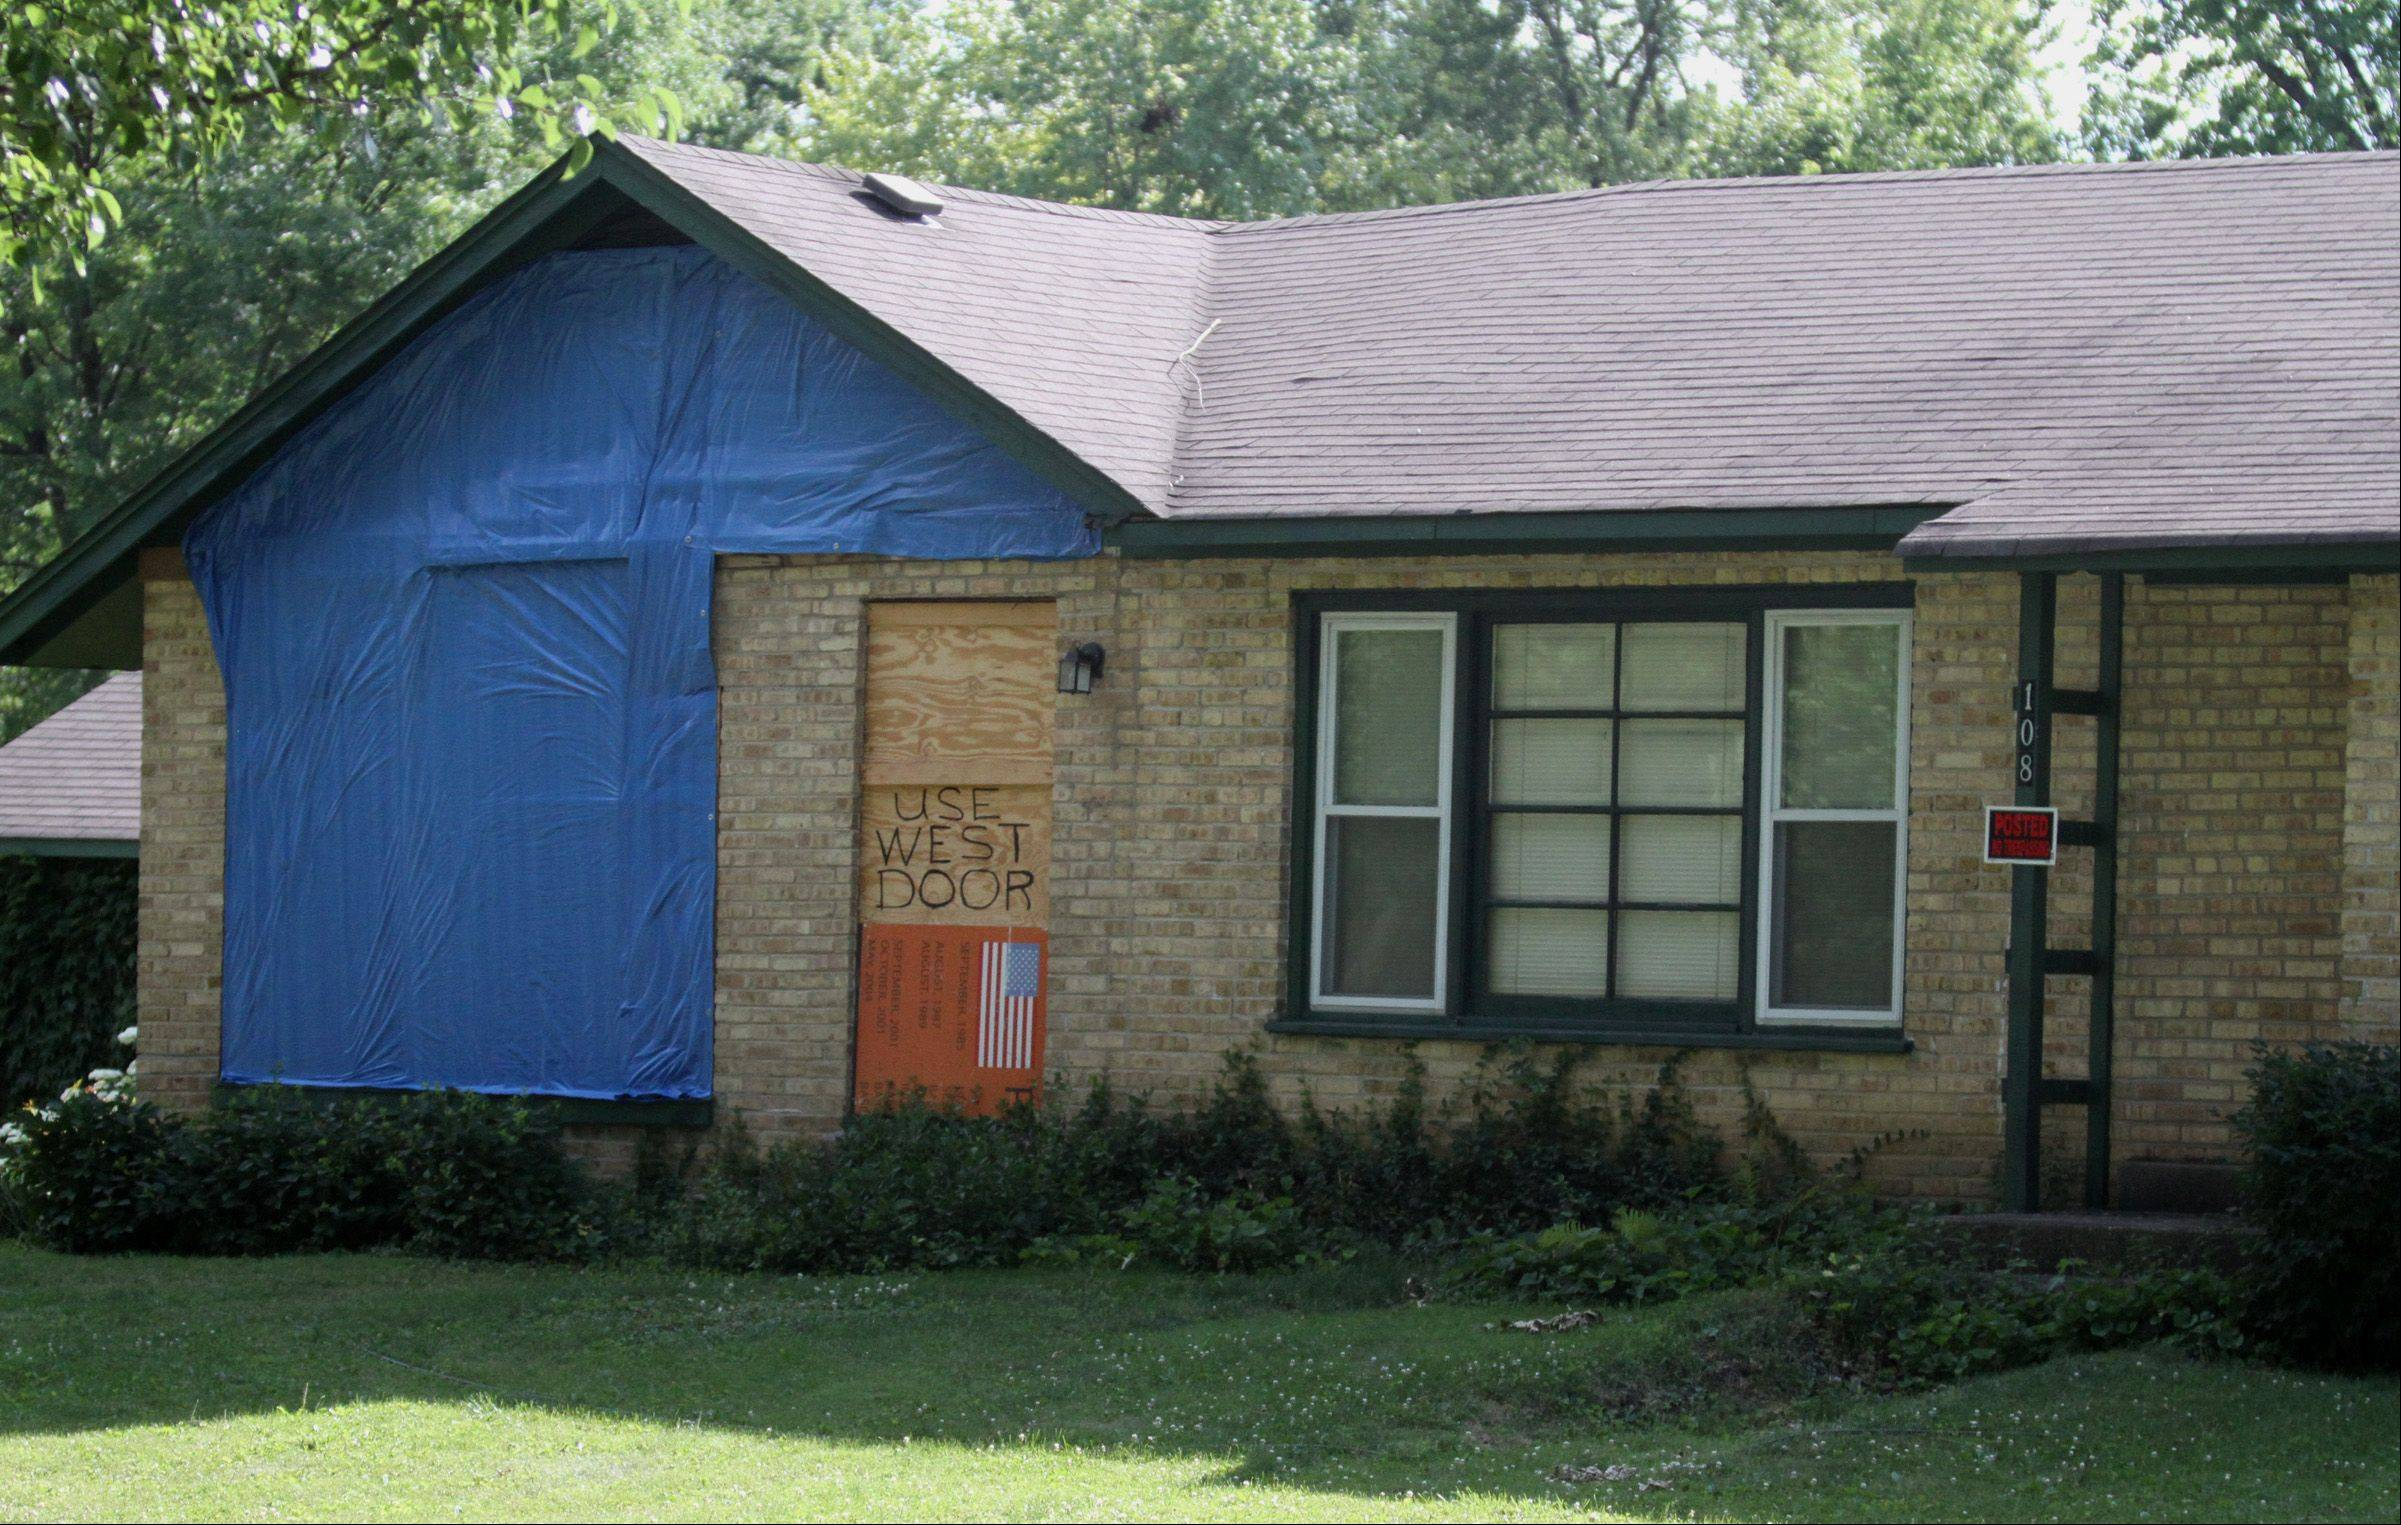 The village of Palatine is in an ongoing legal battle over violations at former Palatine Councilman Warren Kostka's home, pictured here in June. On Thursday. a judge told Kostka he needs to either tear down the structure or begin extensive repairs.